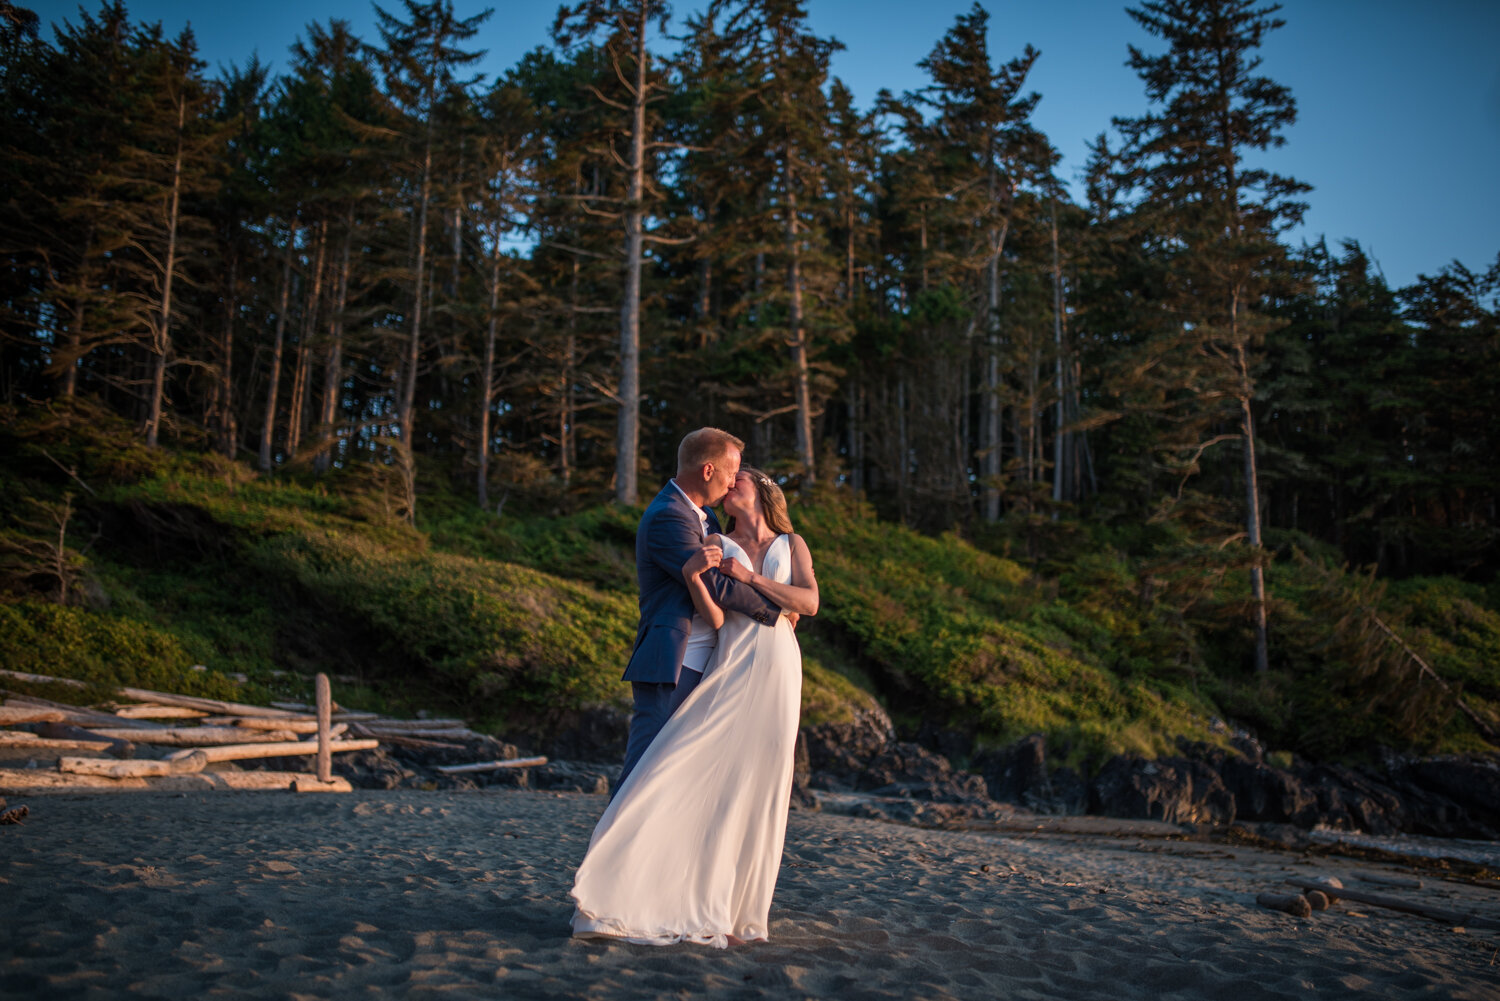 Ucluelet-Wya-Point-Wedding-Owen-Imaging-59.jpg